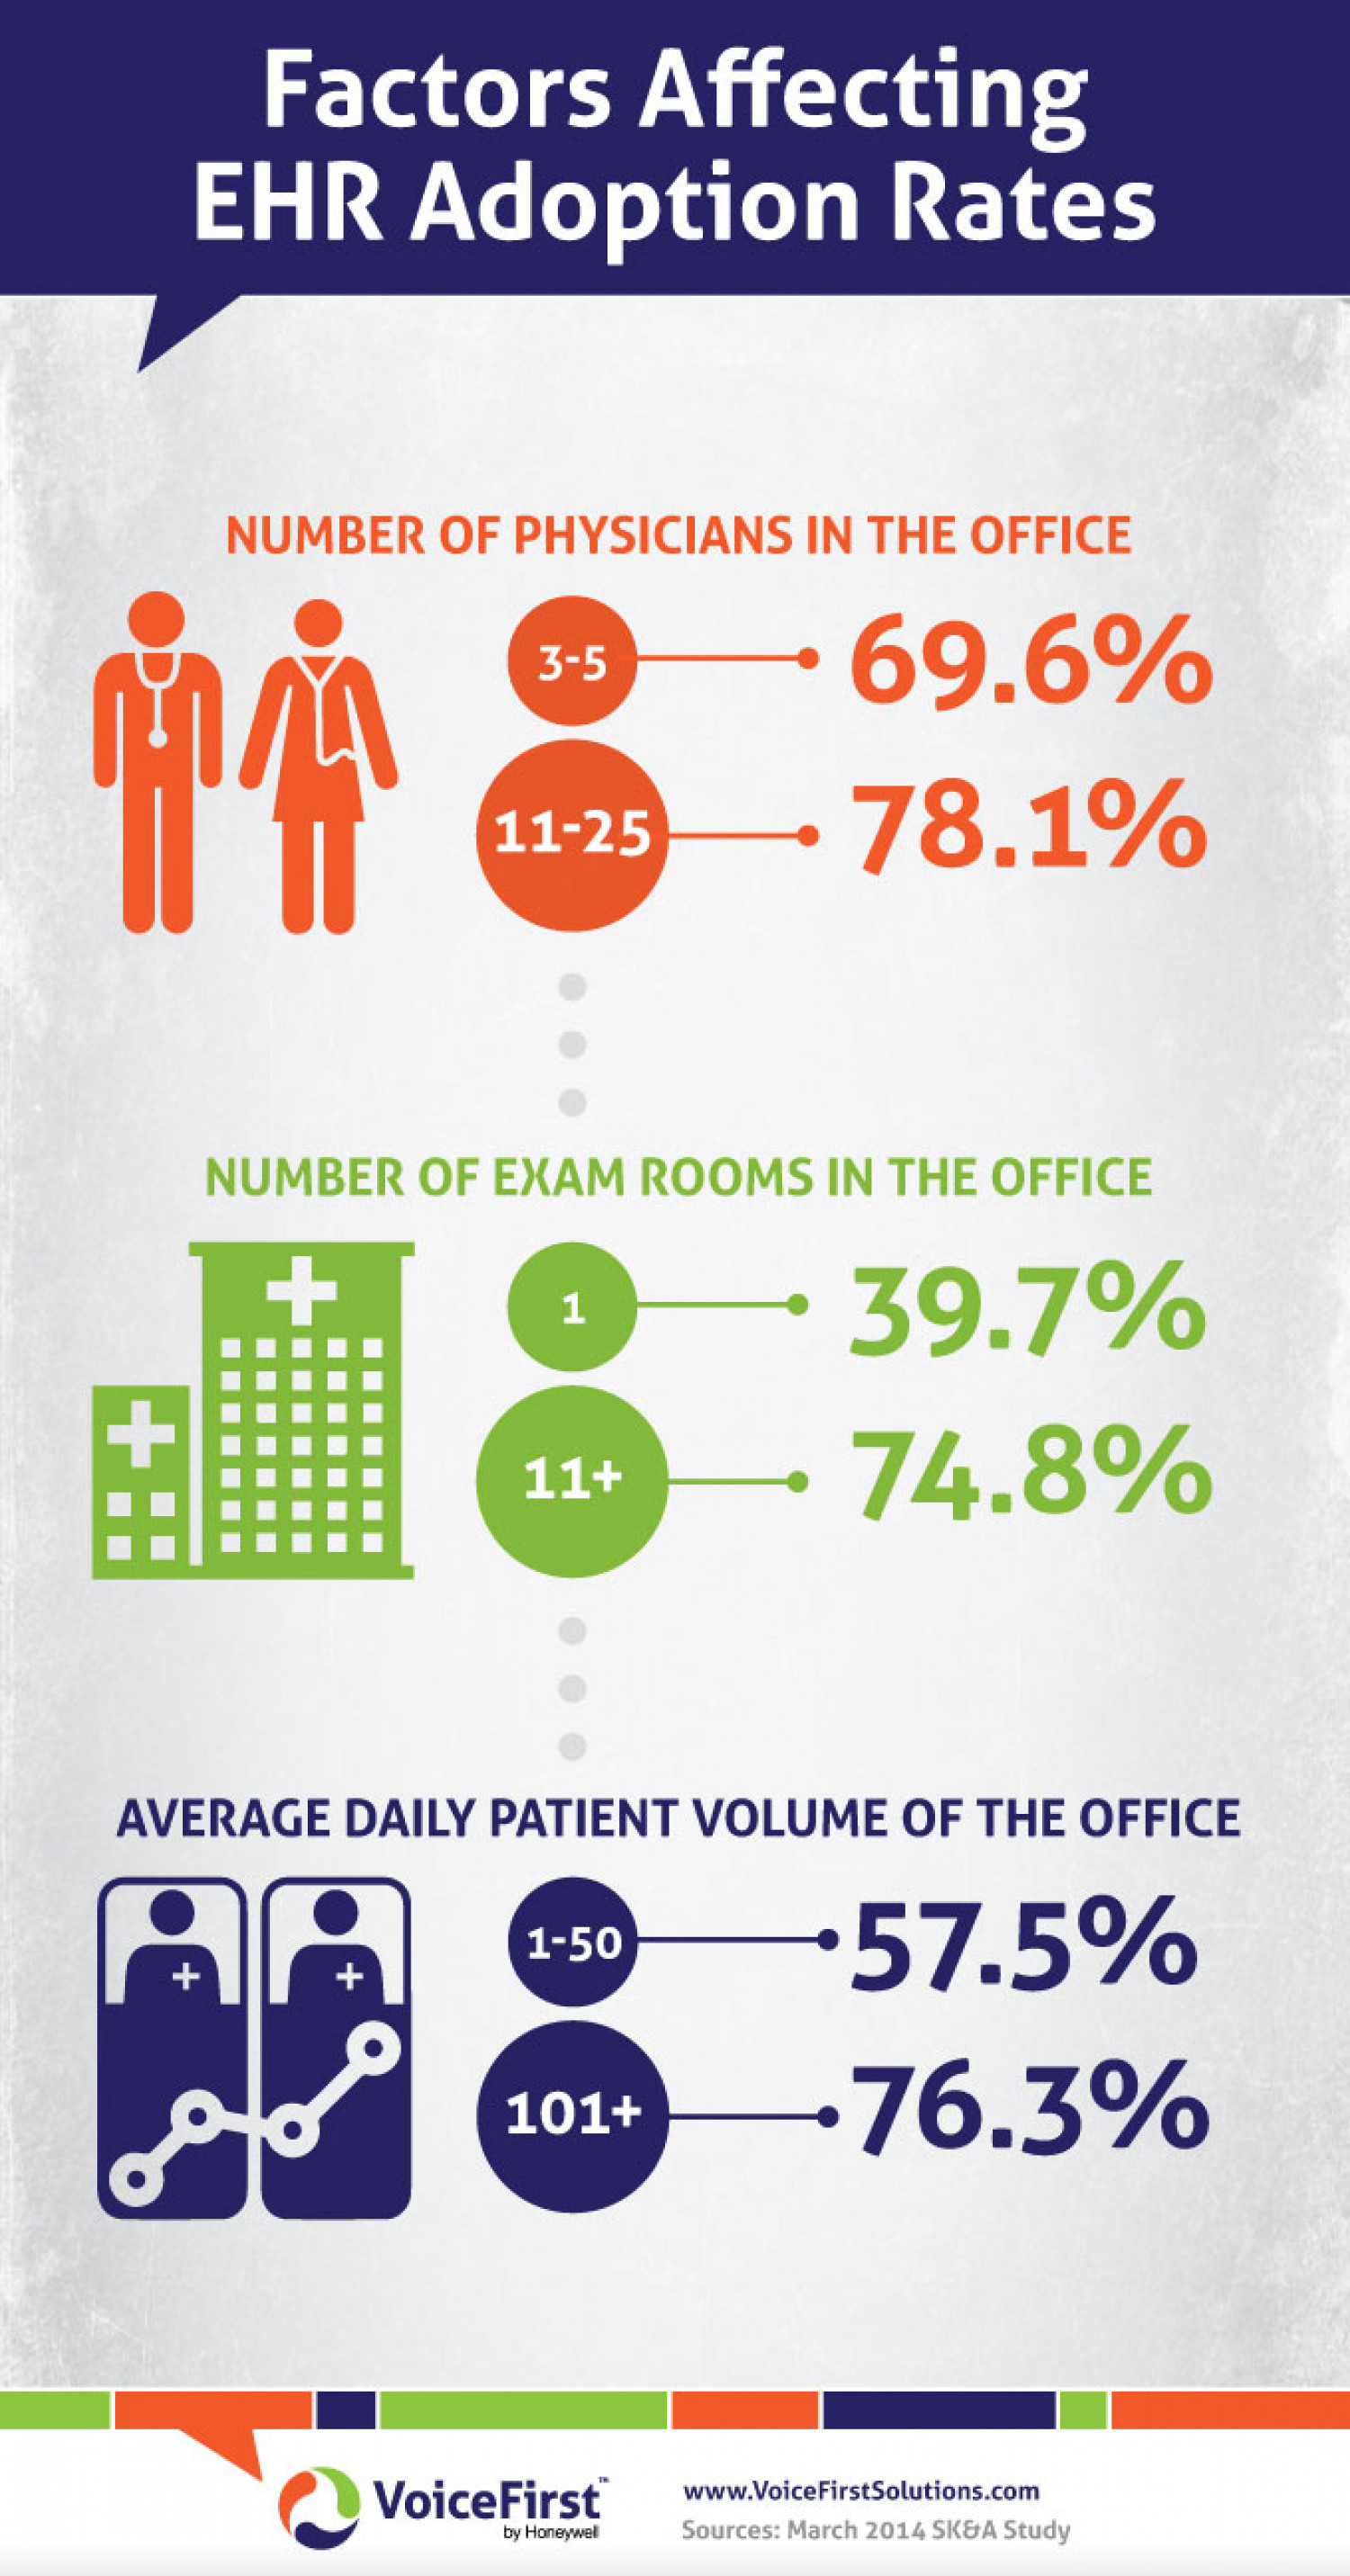 Factors Affecting EHR Adoption Rates Infographic